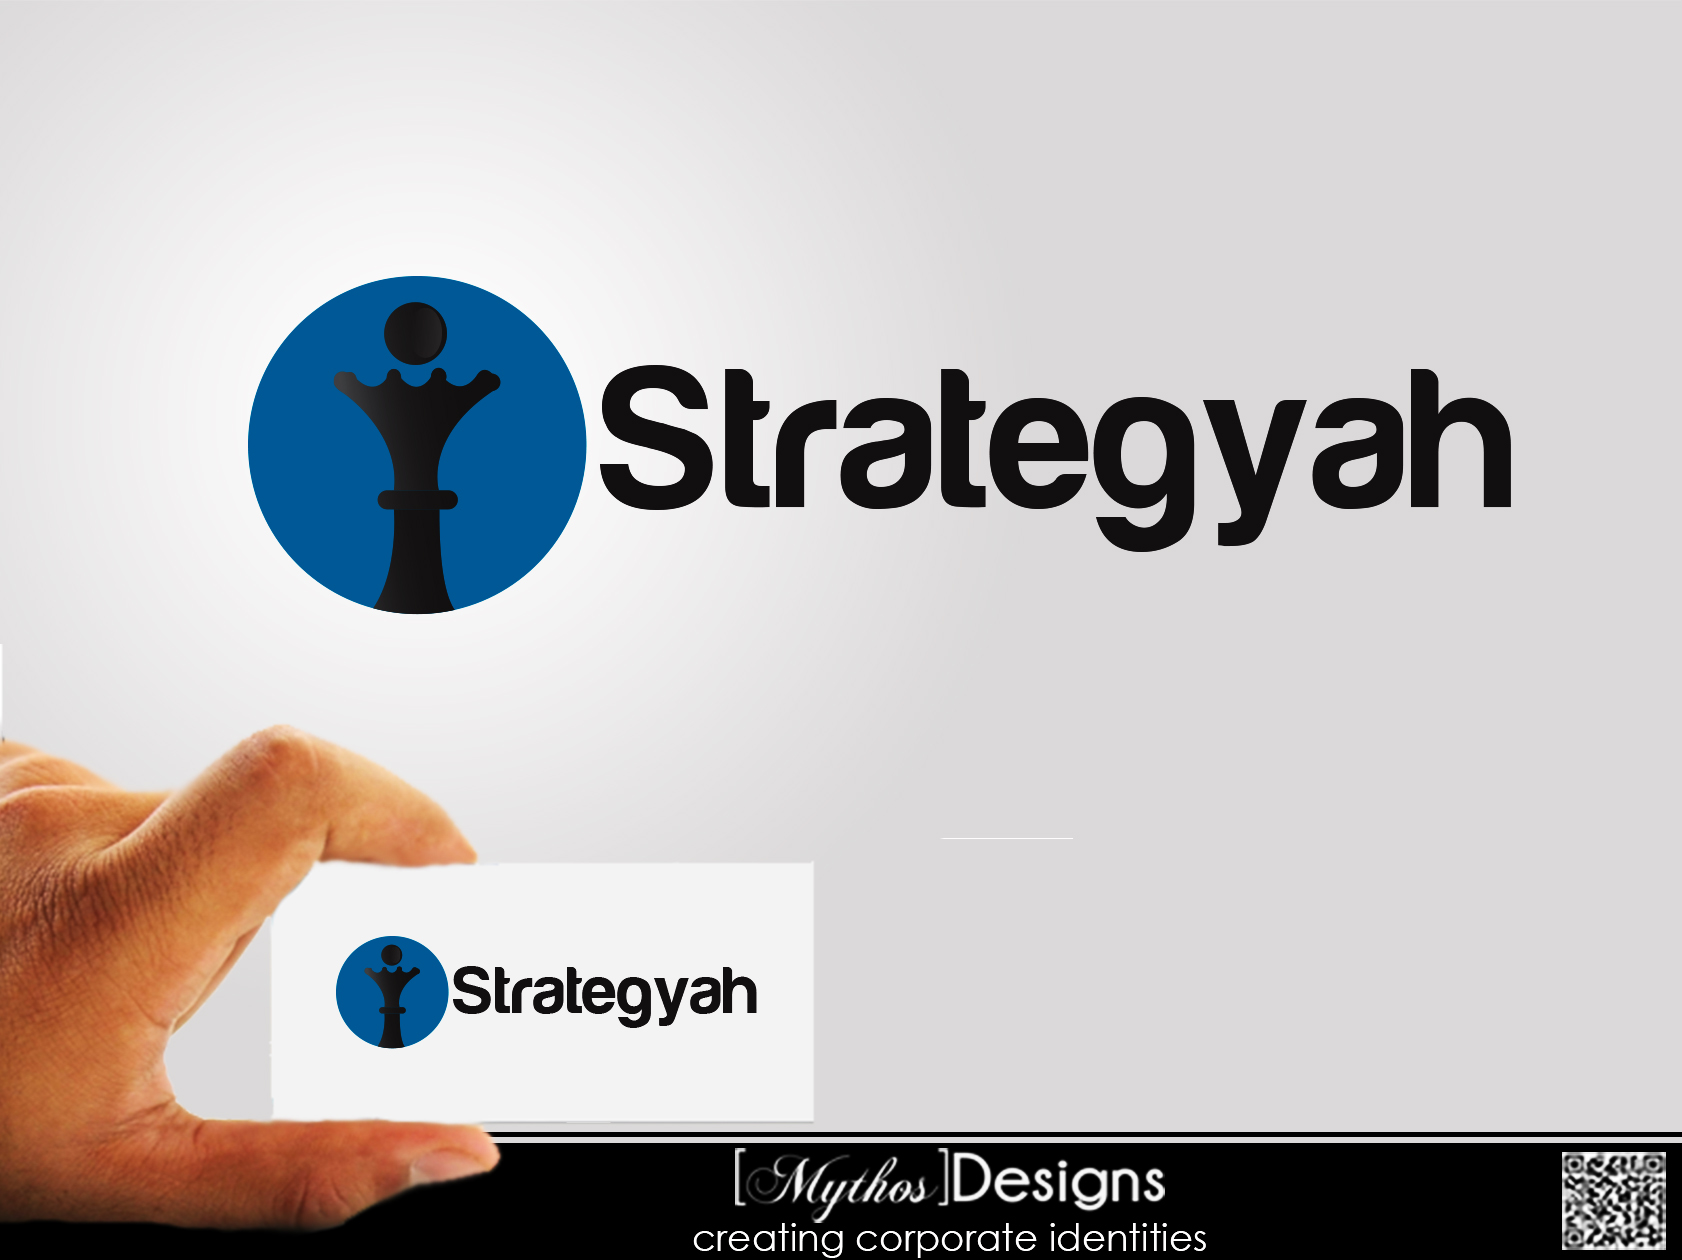 Logo Design by Mythos Designs - Entry No. 473 in the Logo Design Contest Creative Logo Design for Strategyah.